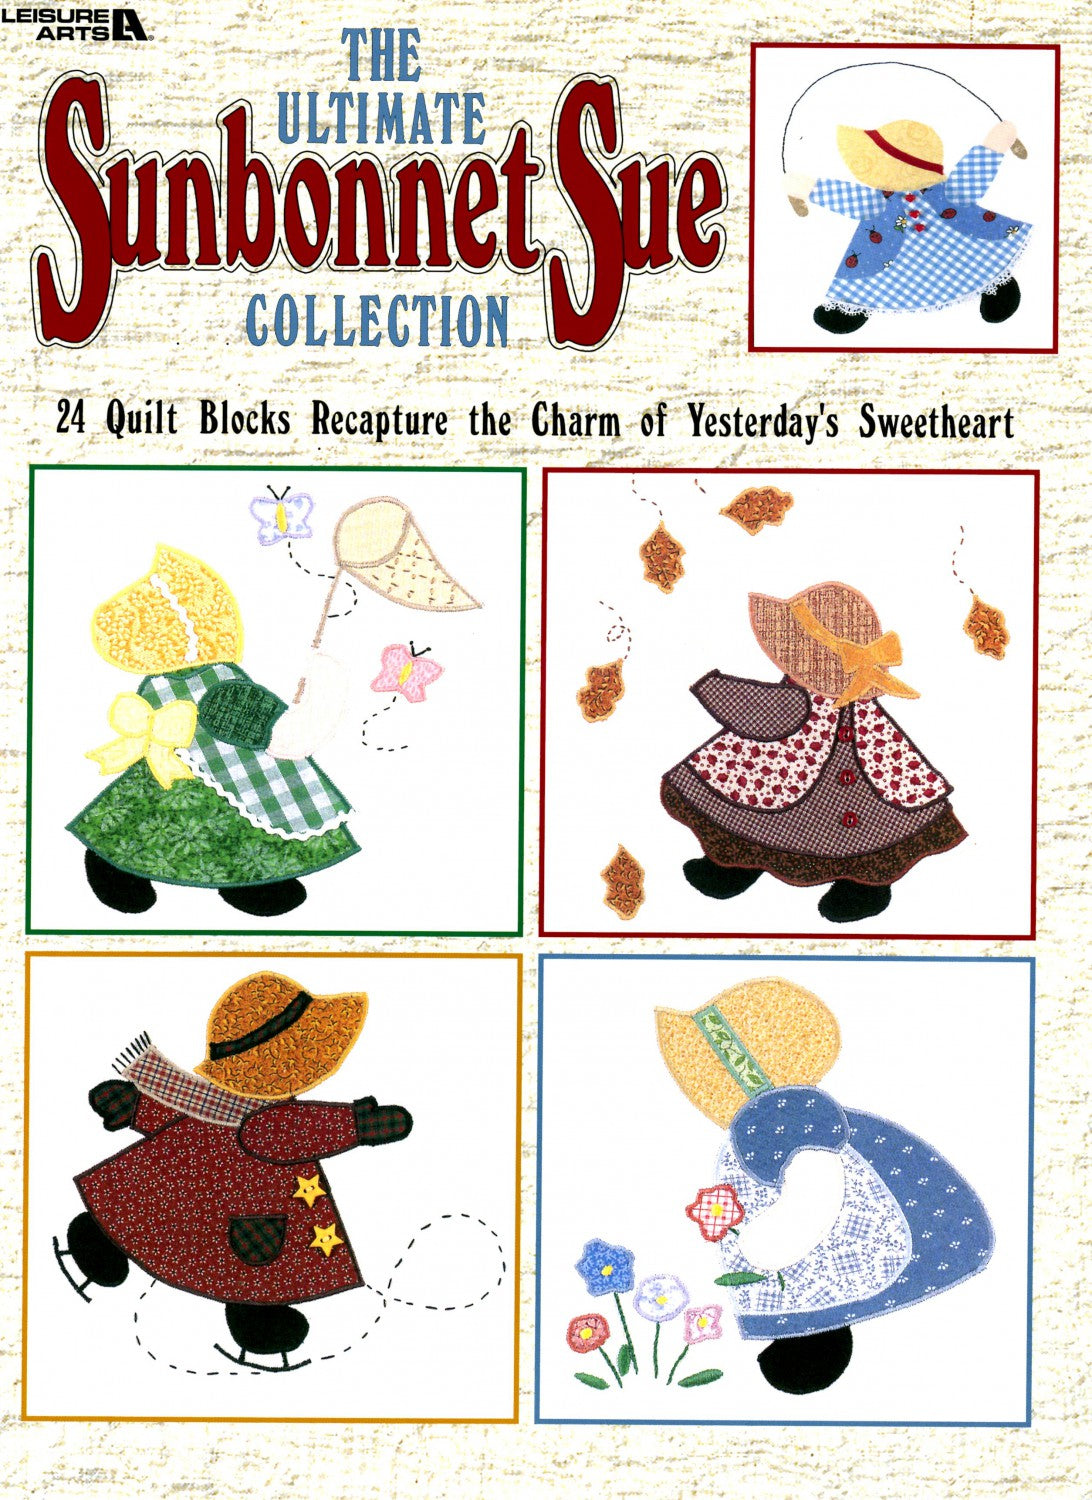 The Ultimate Sunbonnet Sue Collection Quilting Book Softcover